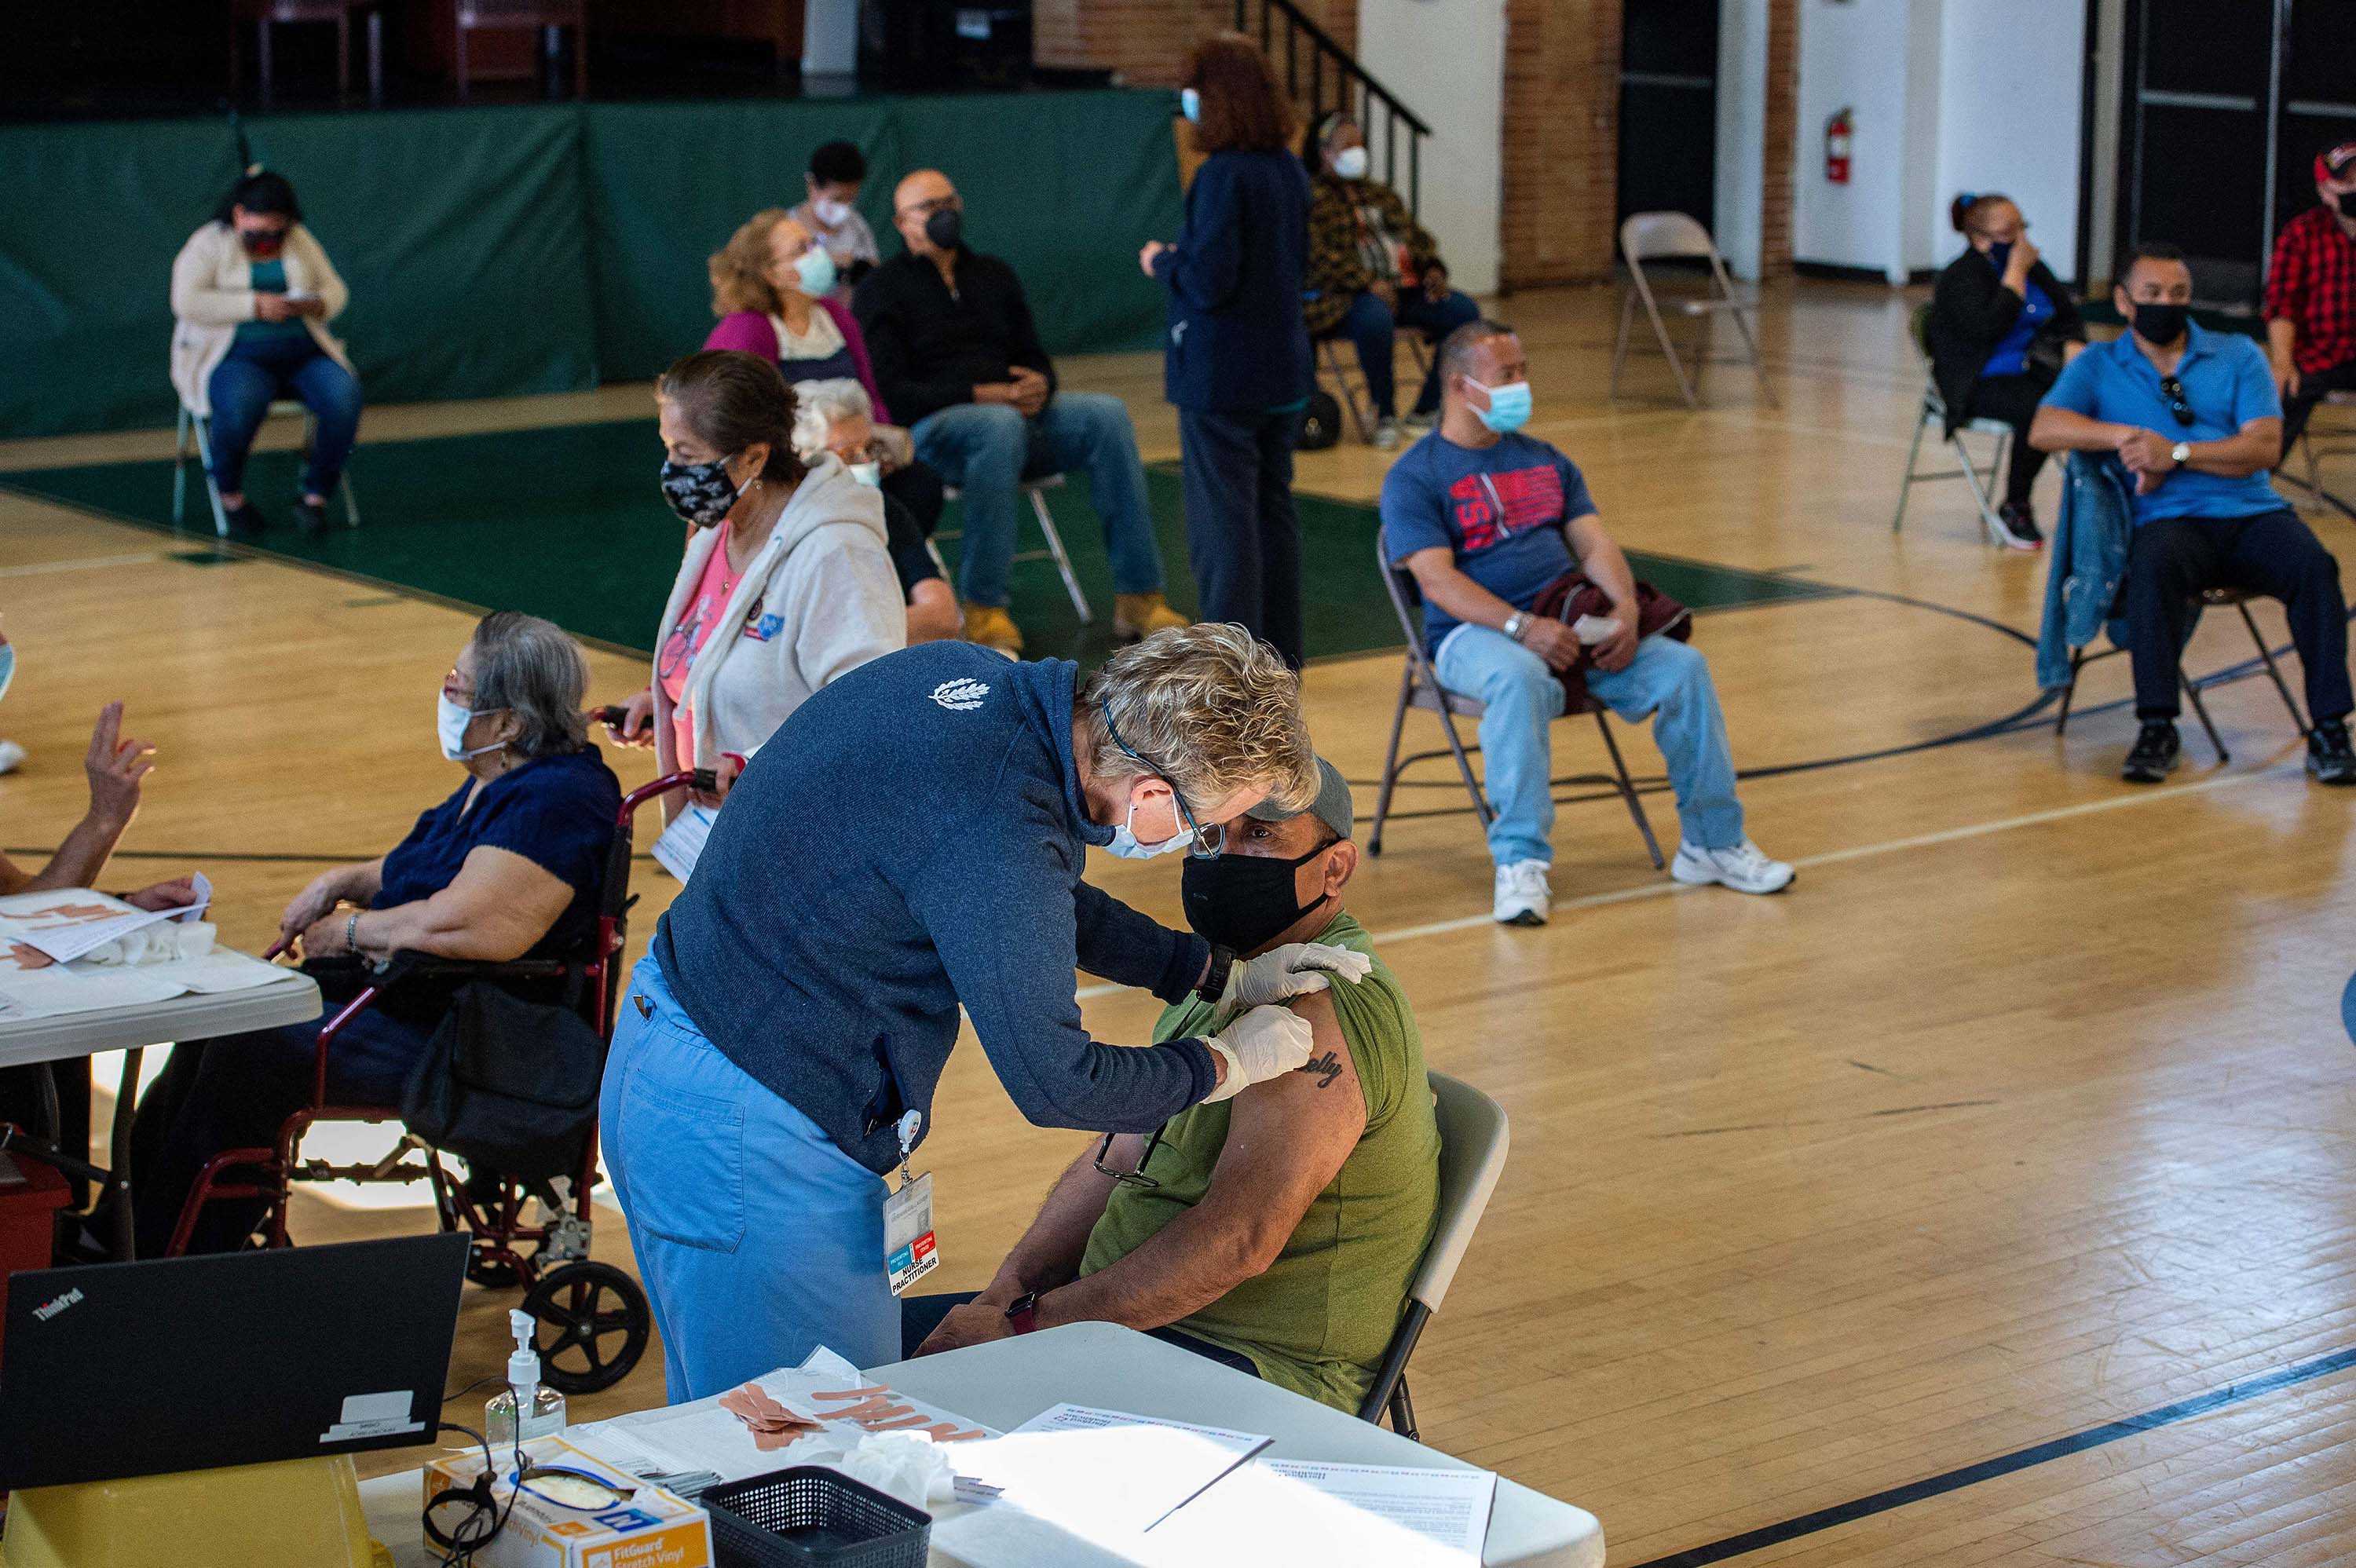 People receive the Moderna Covid-19 vaccine at a mobile vaccination clinic in Bridgeport, Connecticut on April 20.